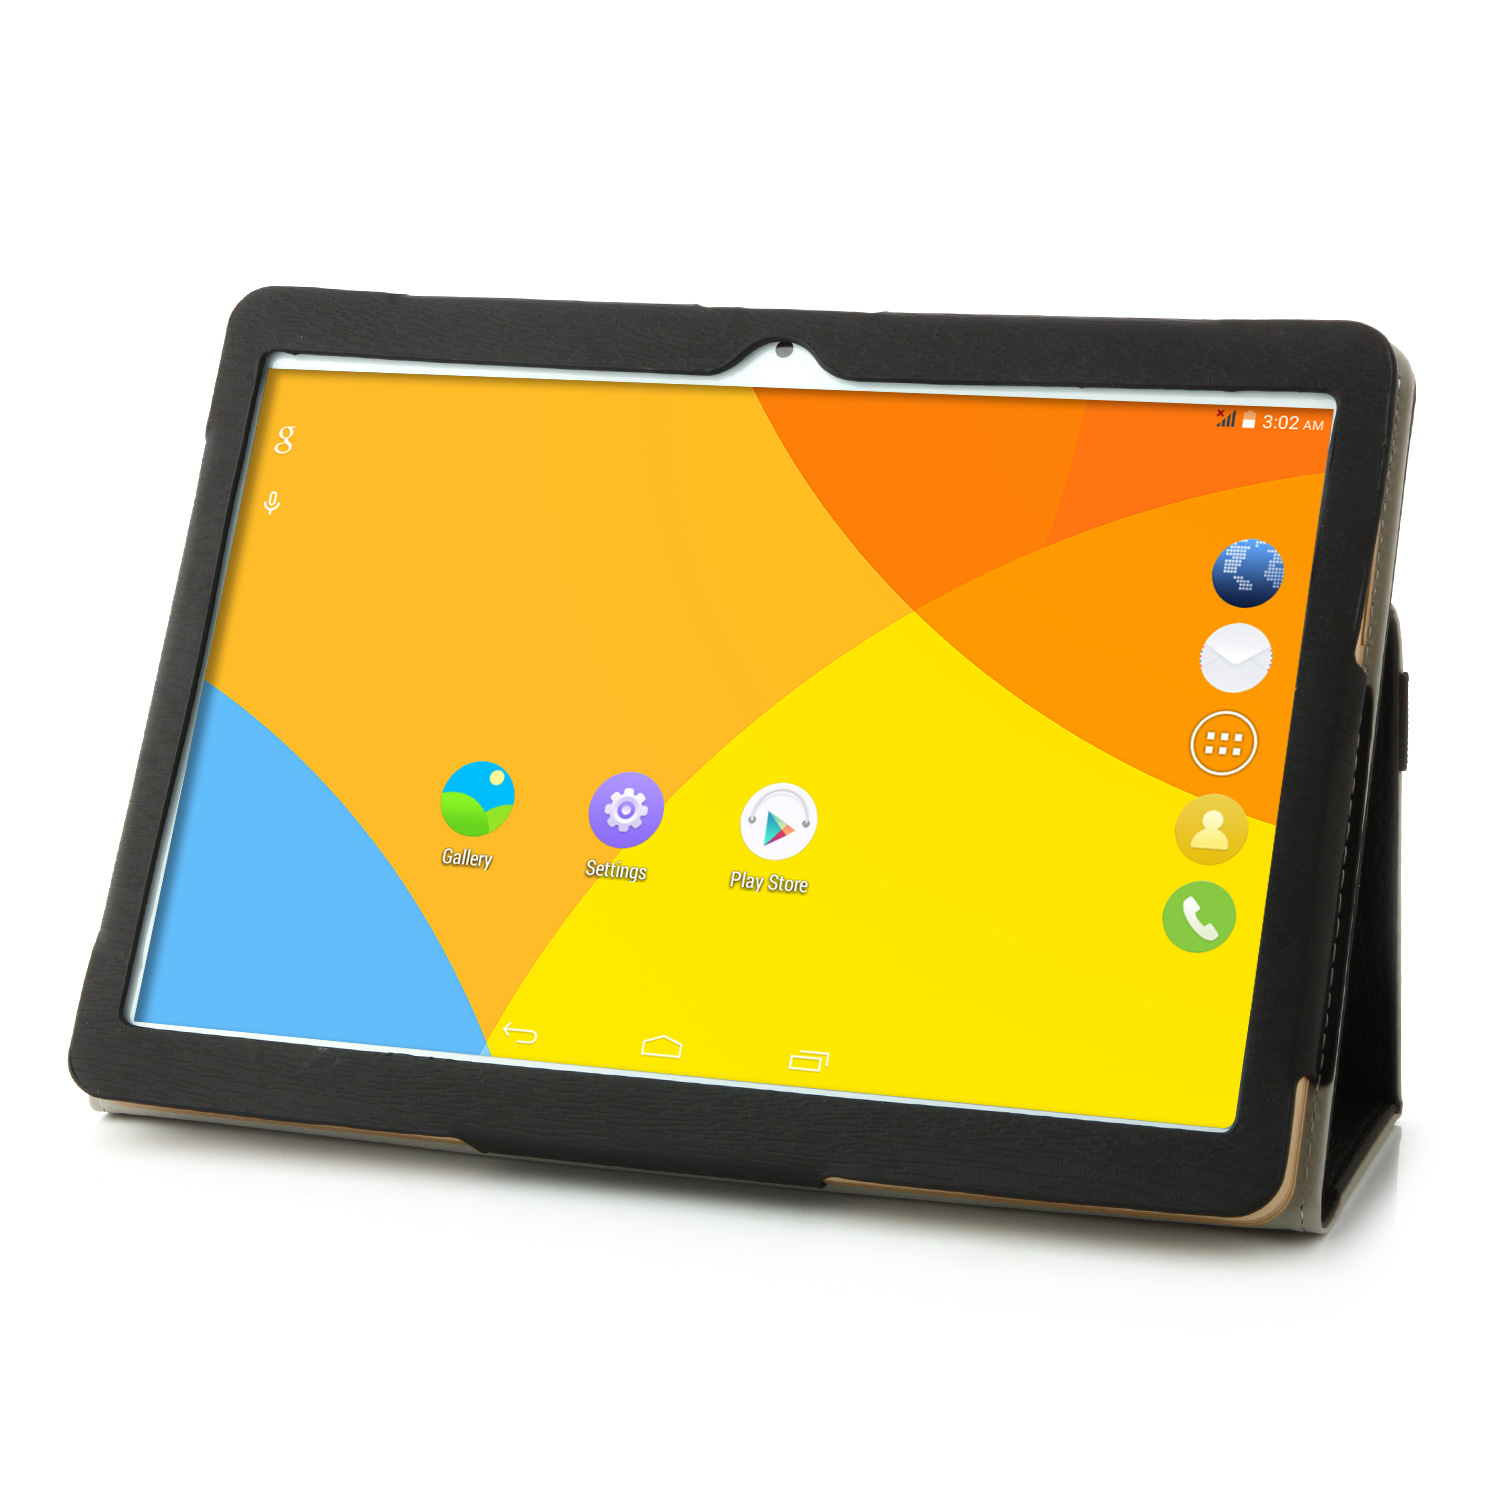 Original Flip Stand Leather Case Cover for VOYO Q901 Tablet PC Black